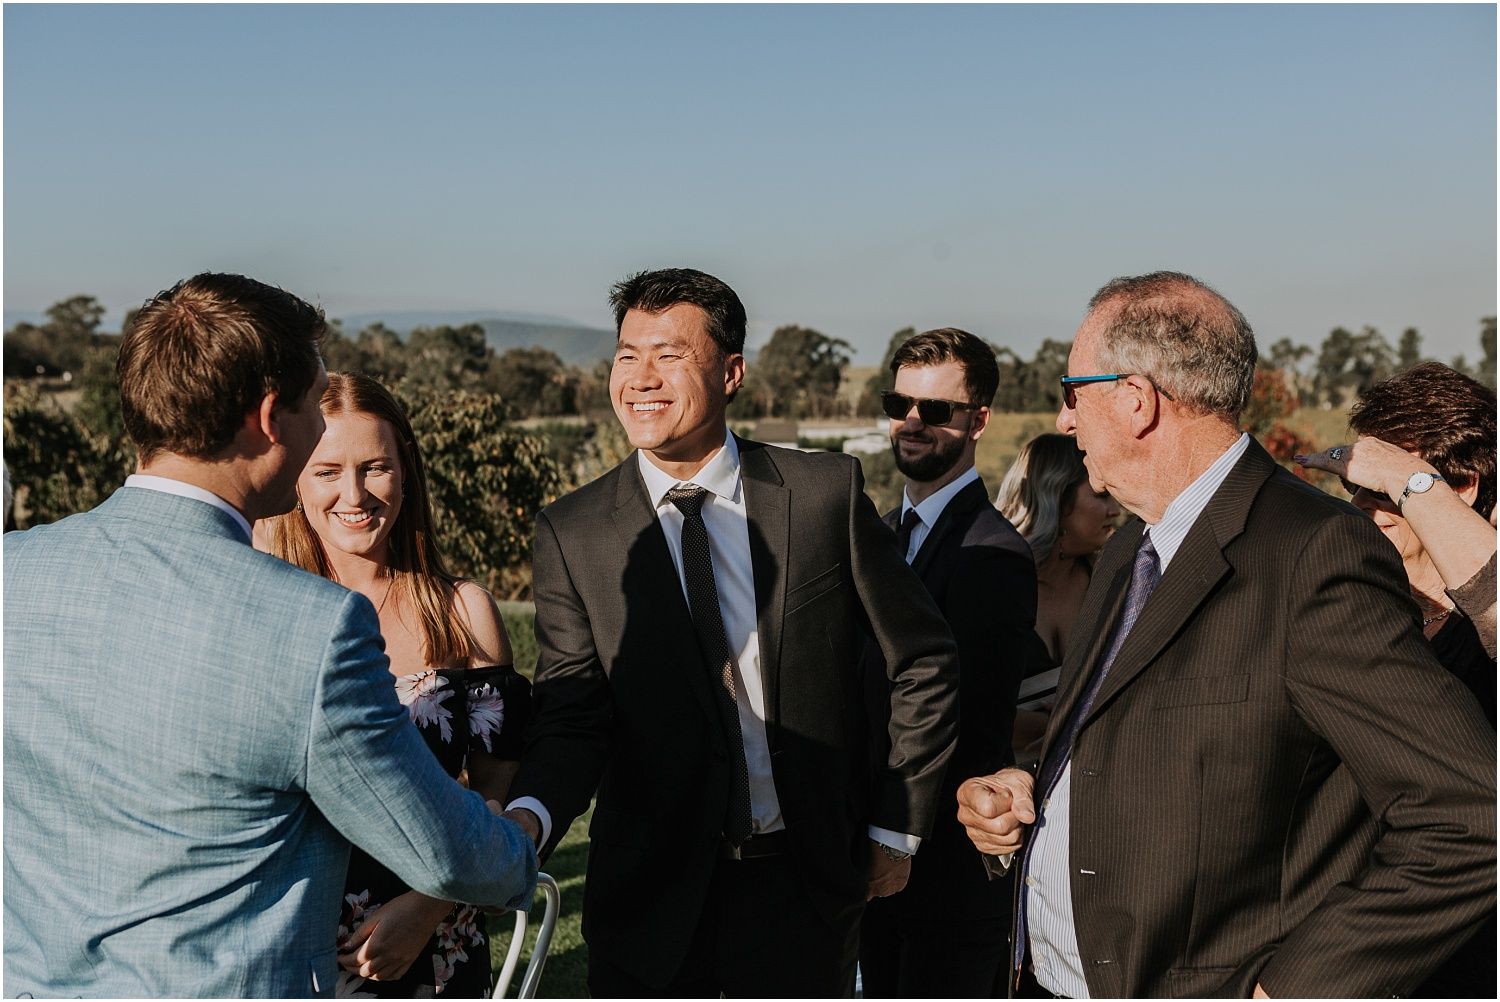 Lacey and Warwick's Yarra Valley winery wedding at Vines Helens Hill._0061.jpg